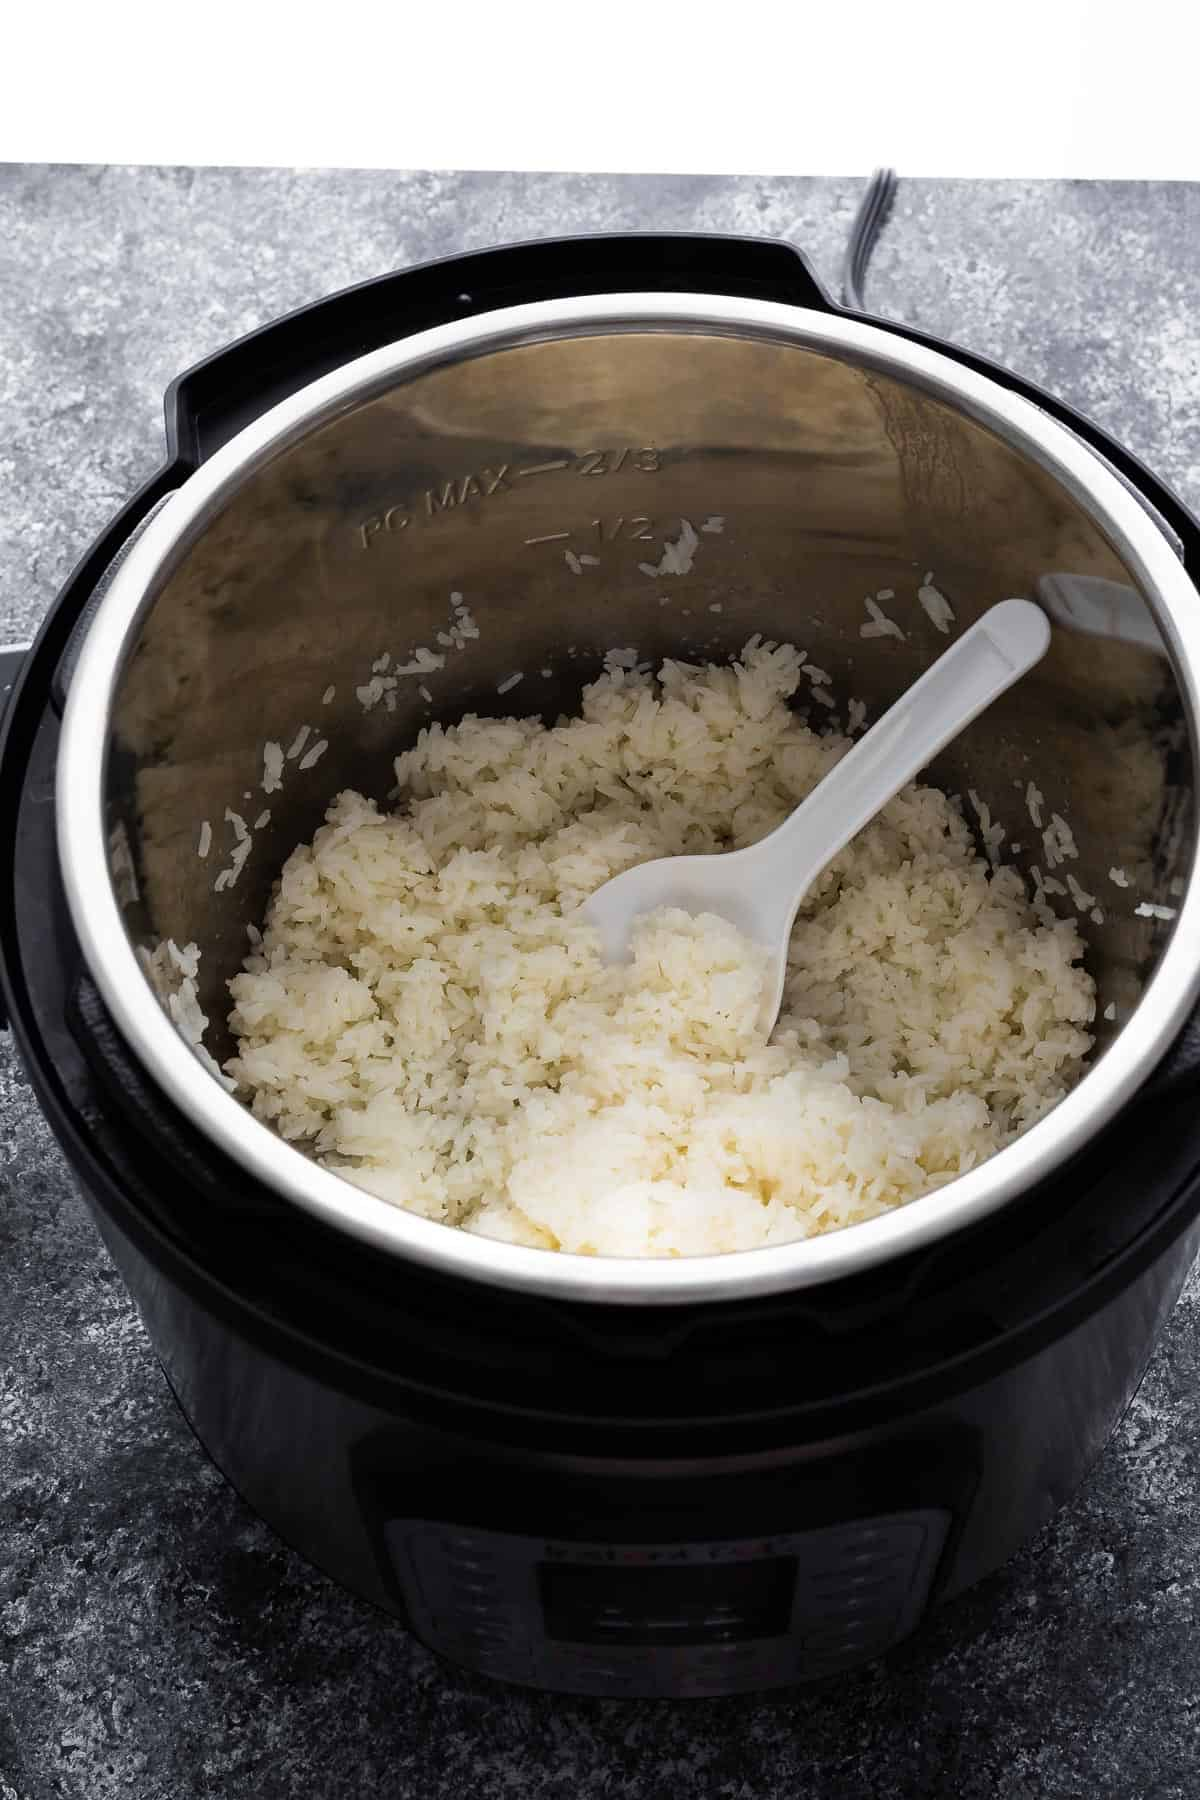 cooked jasmine rice in the finished pot with rice paddle